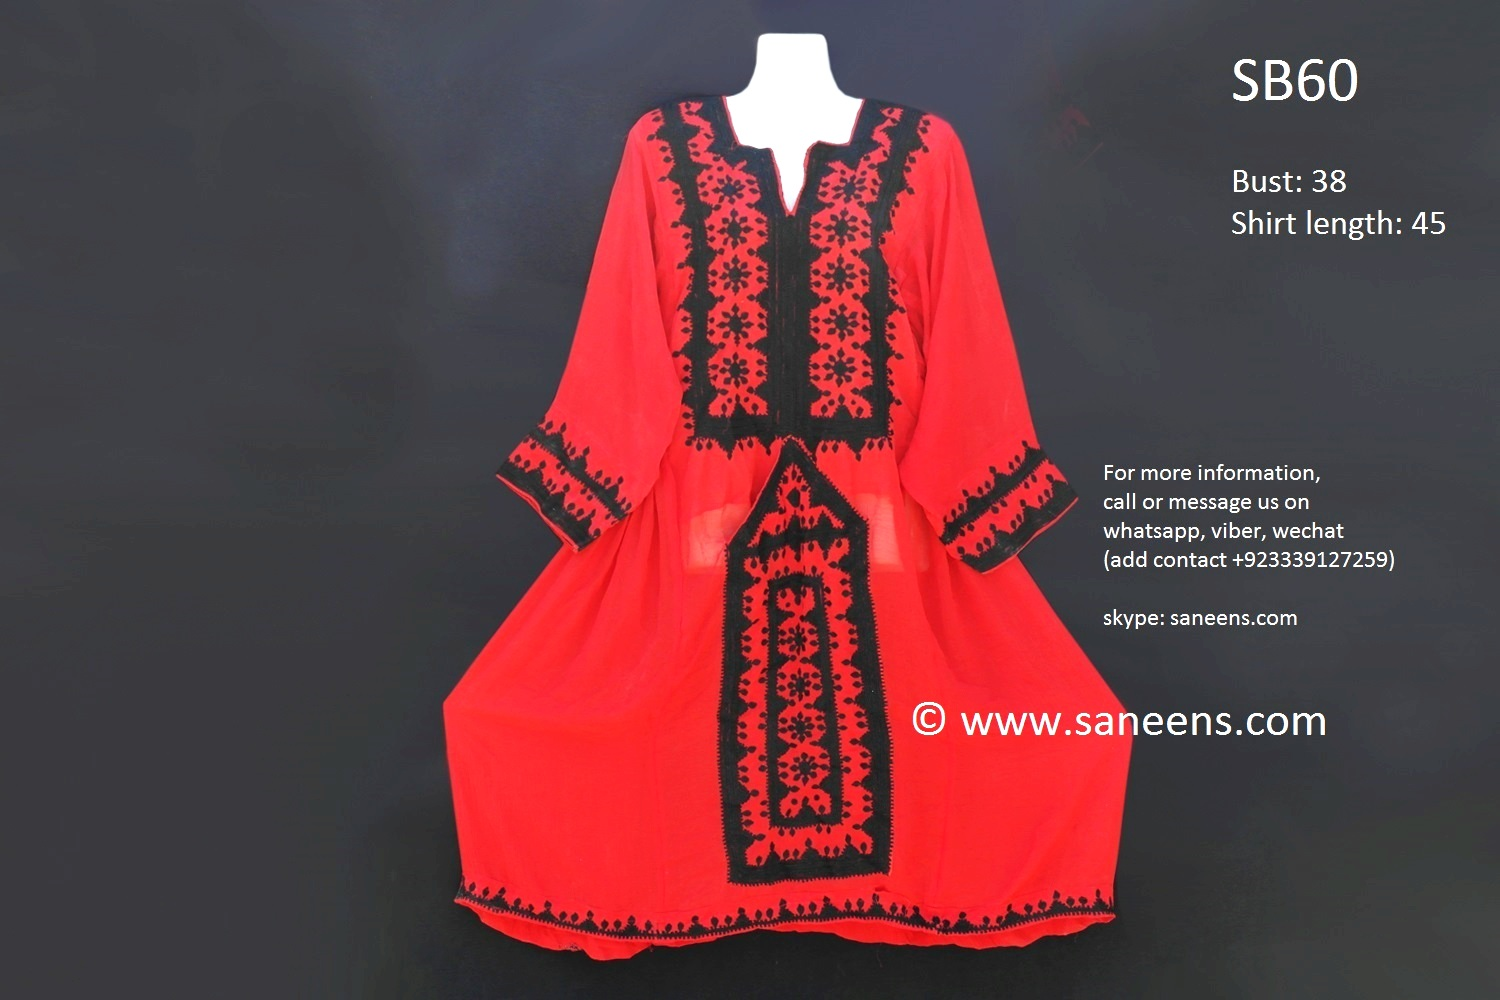 Bright Red Color Balochi Clothes With Black Needlework Embroidery